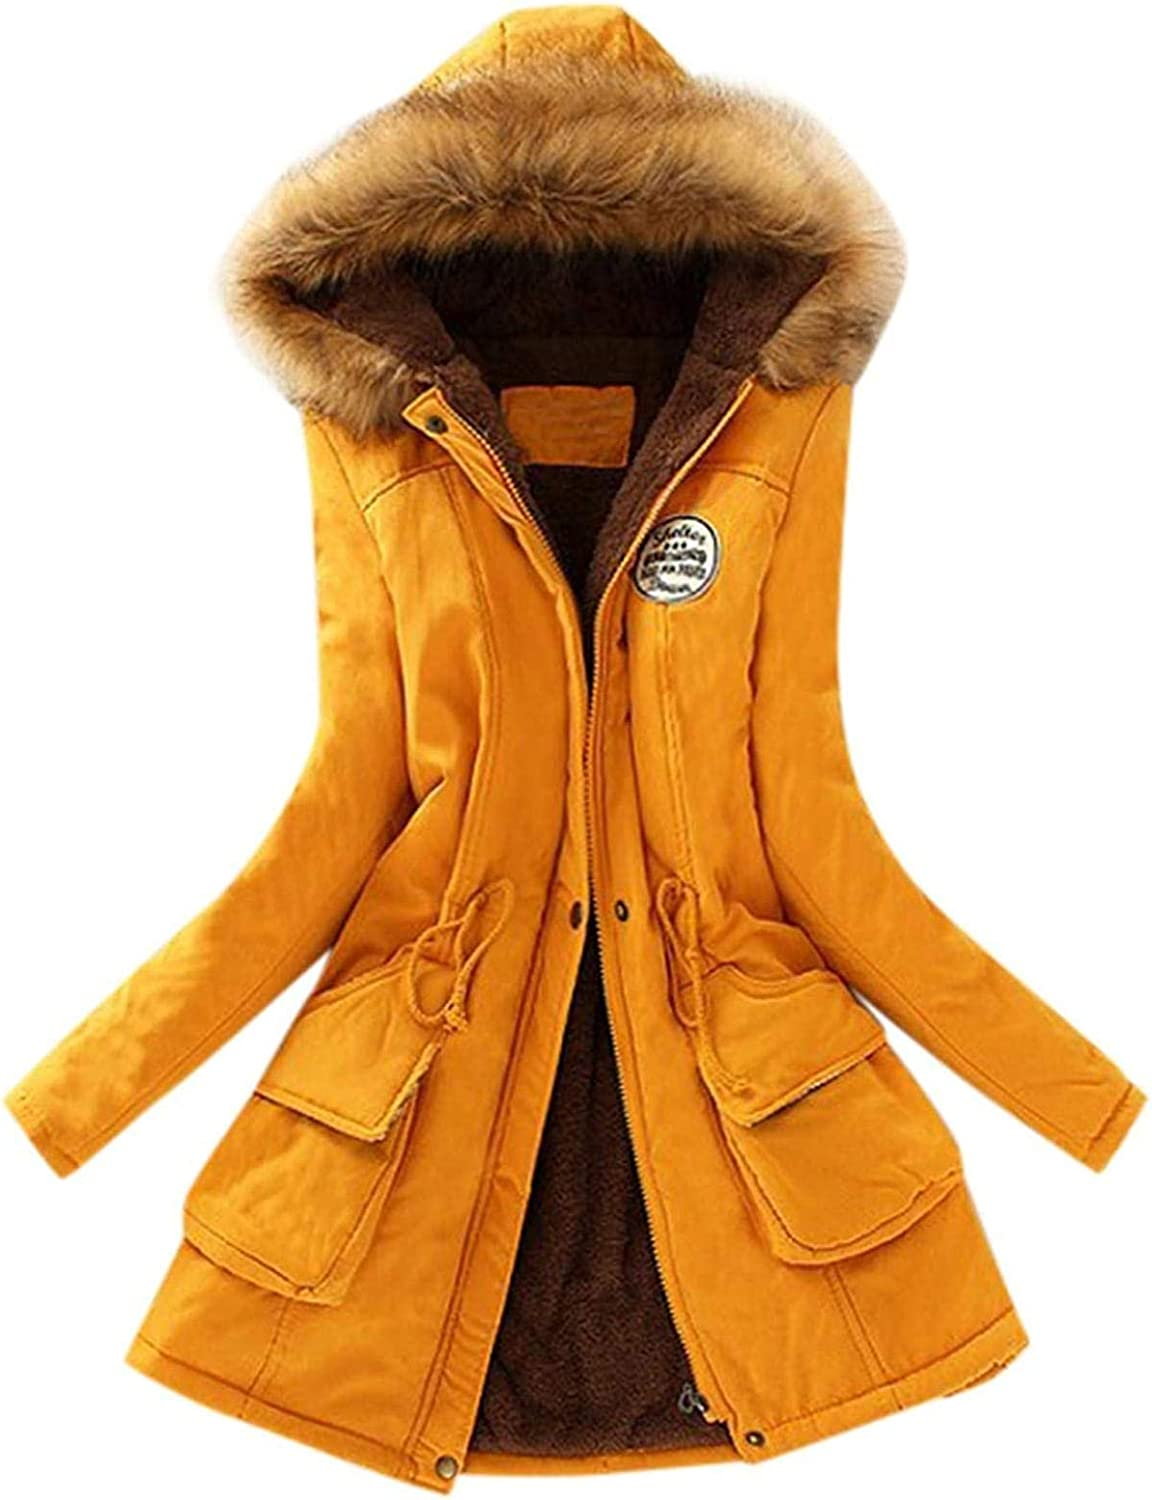 Womens Winter Hooded Jacket Coats Cotton Warm Parkas Casual Trendy Jackets Zipper Trench Coats with Faux Fur Hood